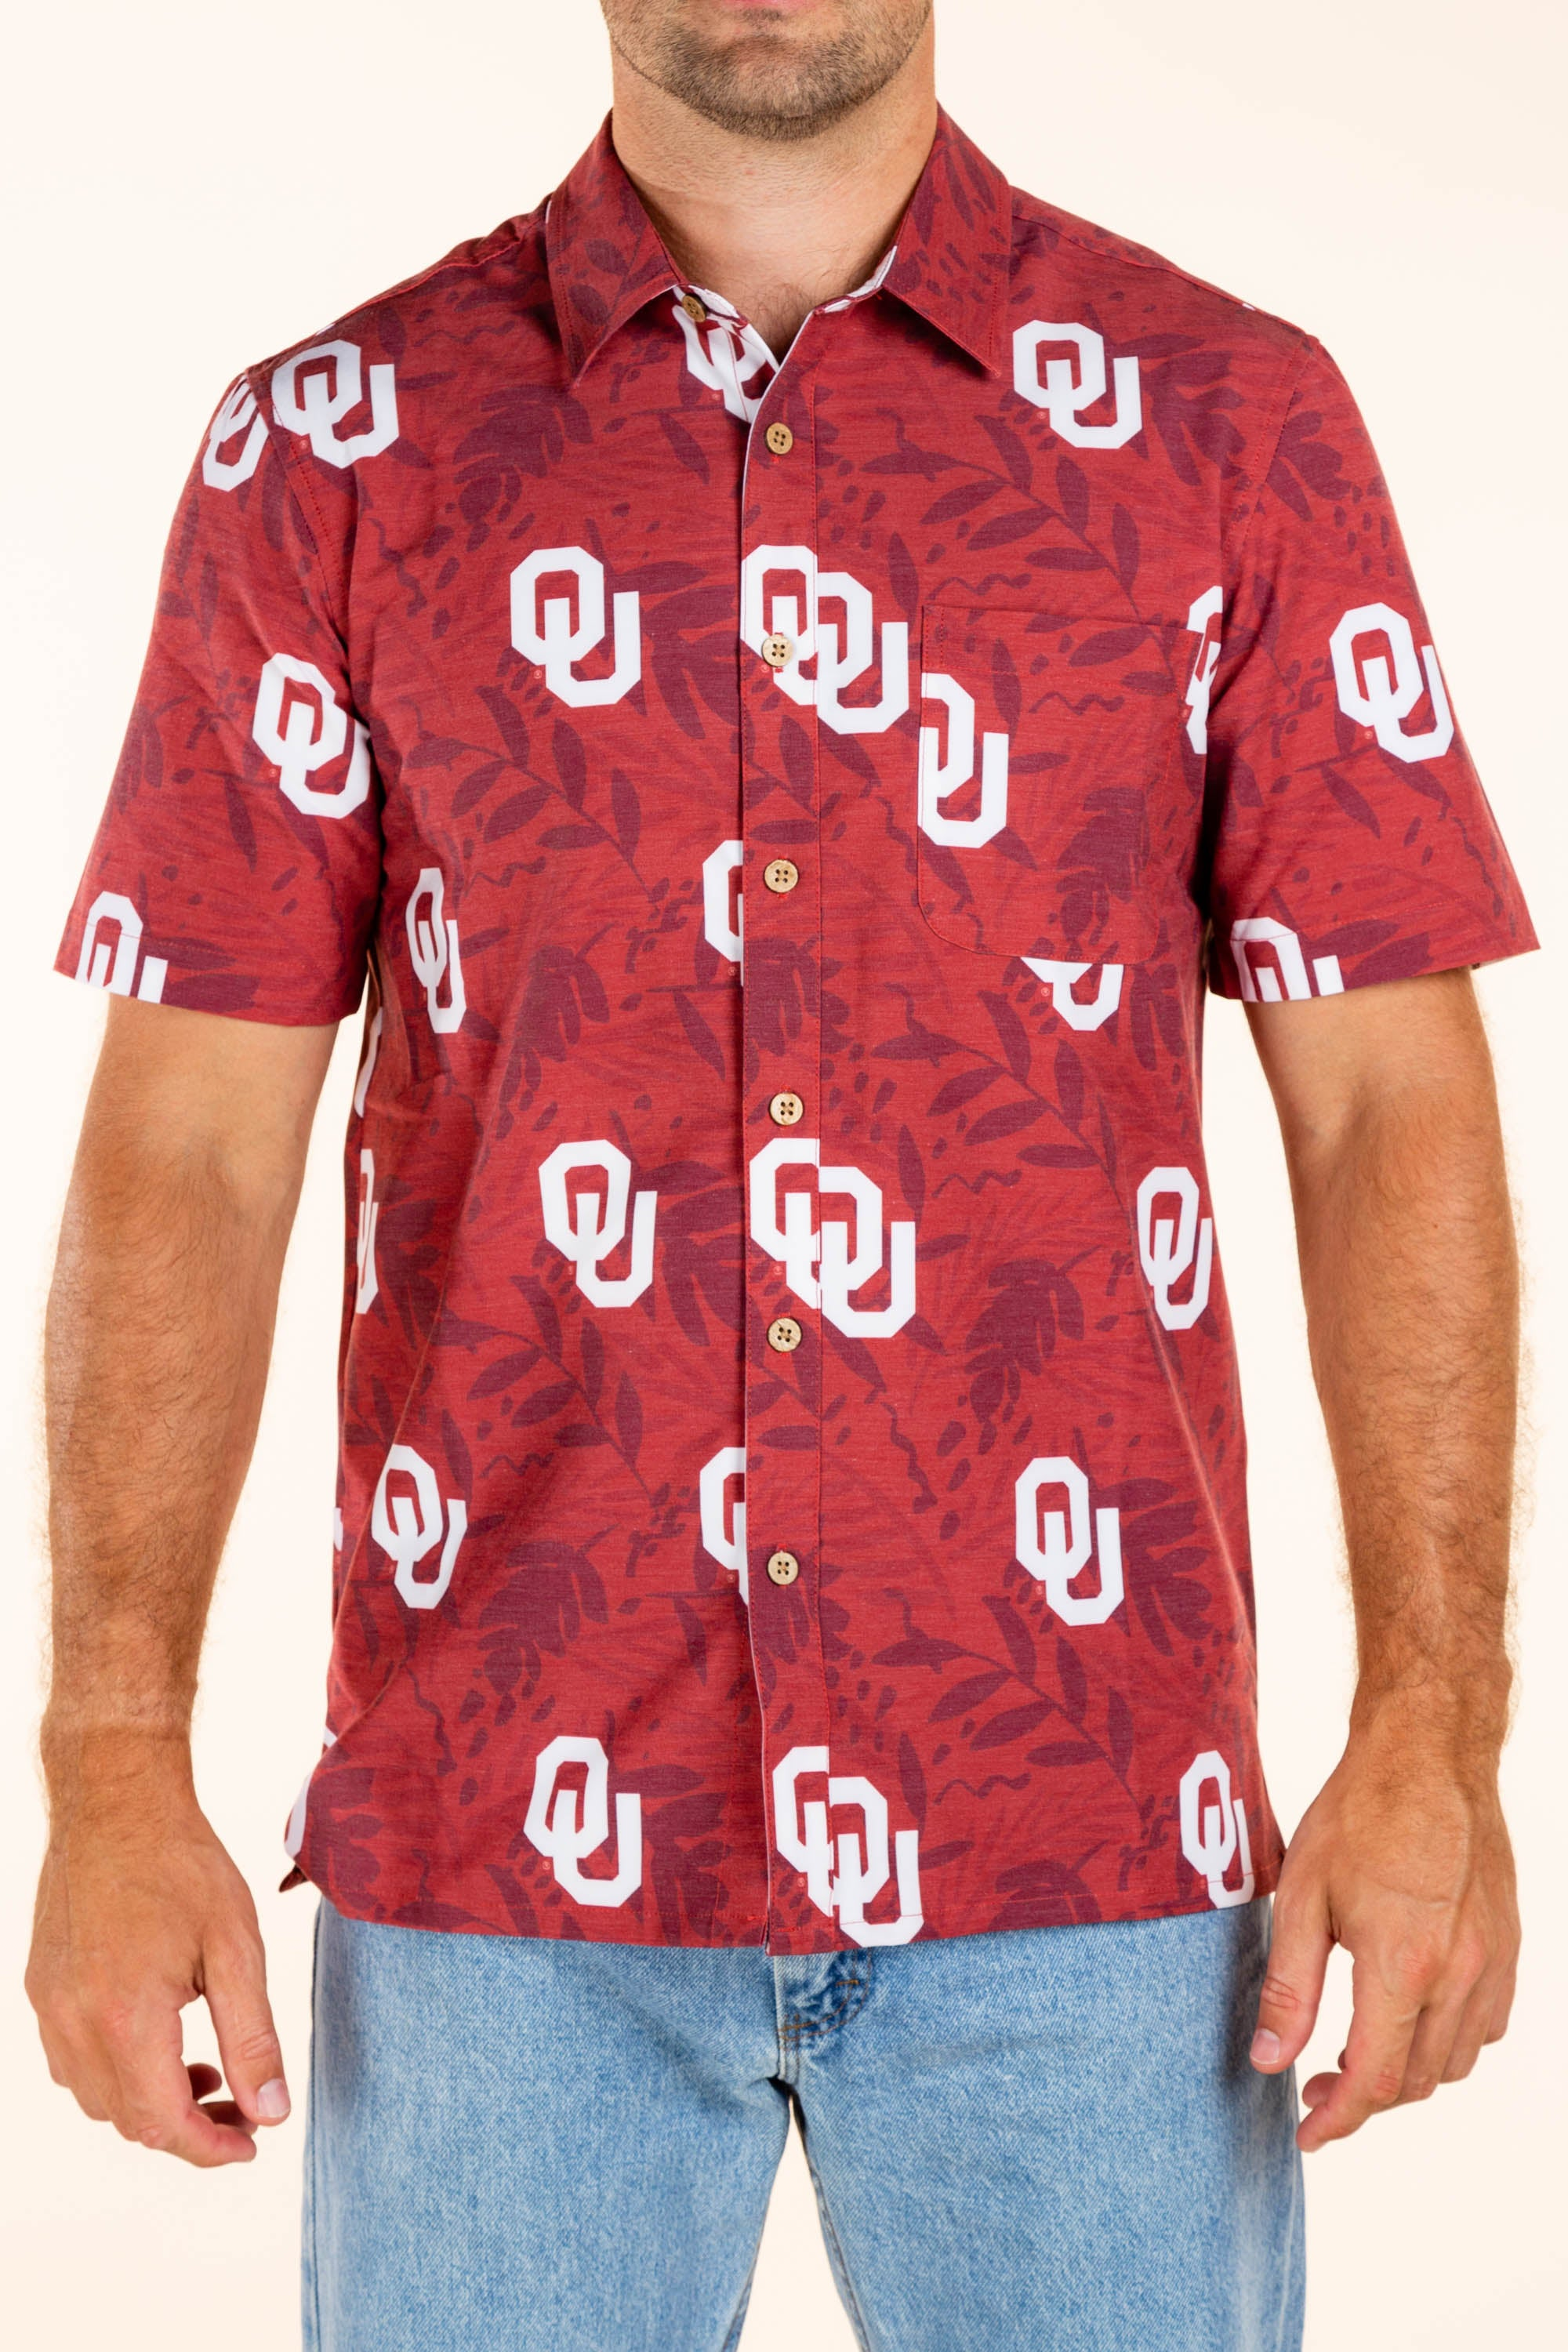 University of Oklahoma Button Up Tailgating Shirt